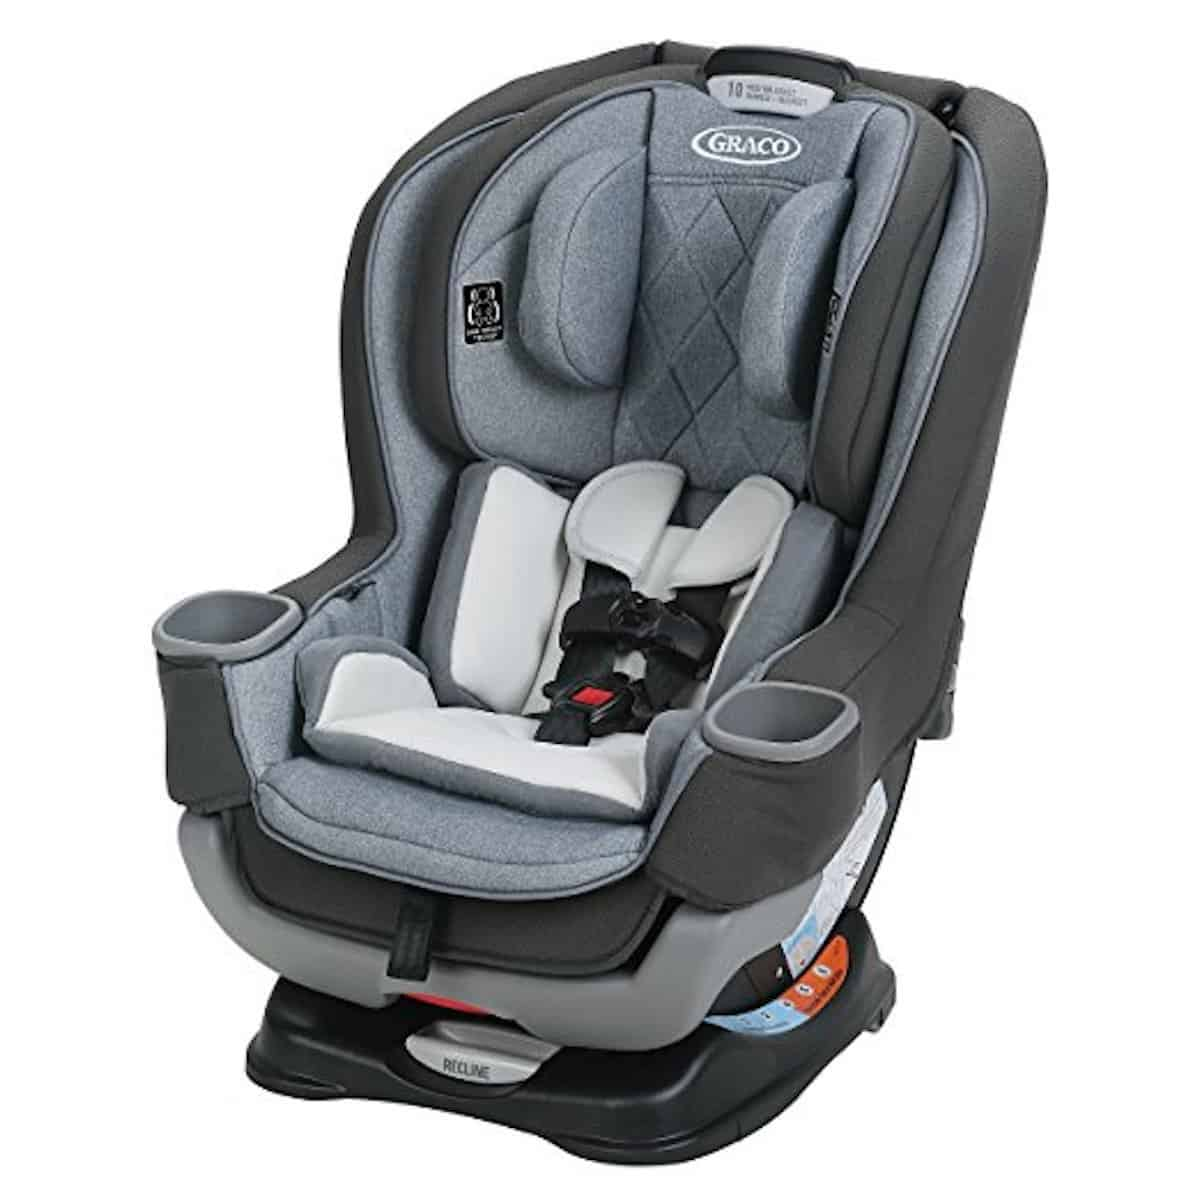 13 Best Extended Rear Facing Car Seats » Read Now!